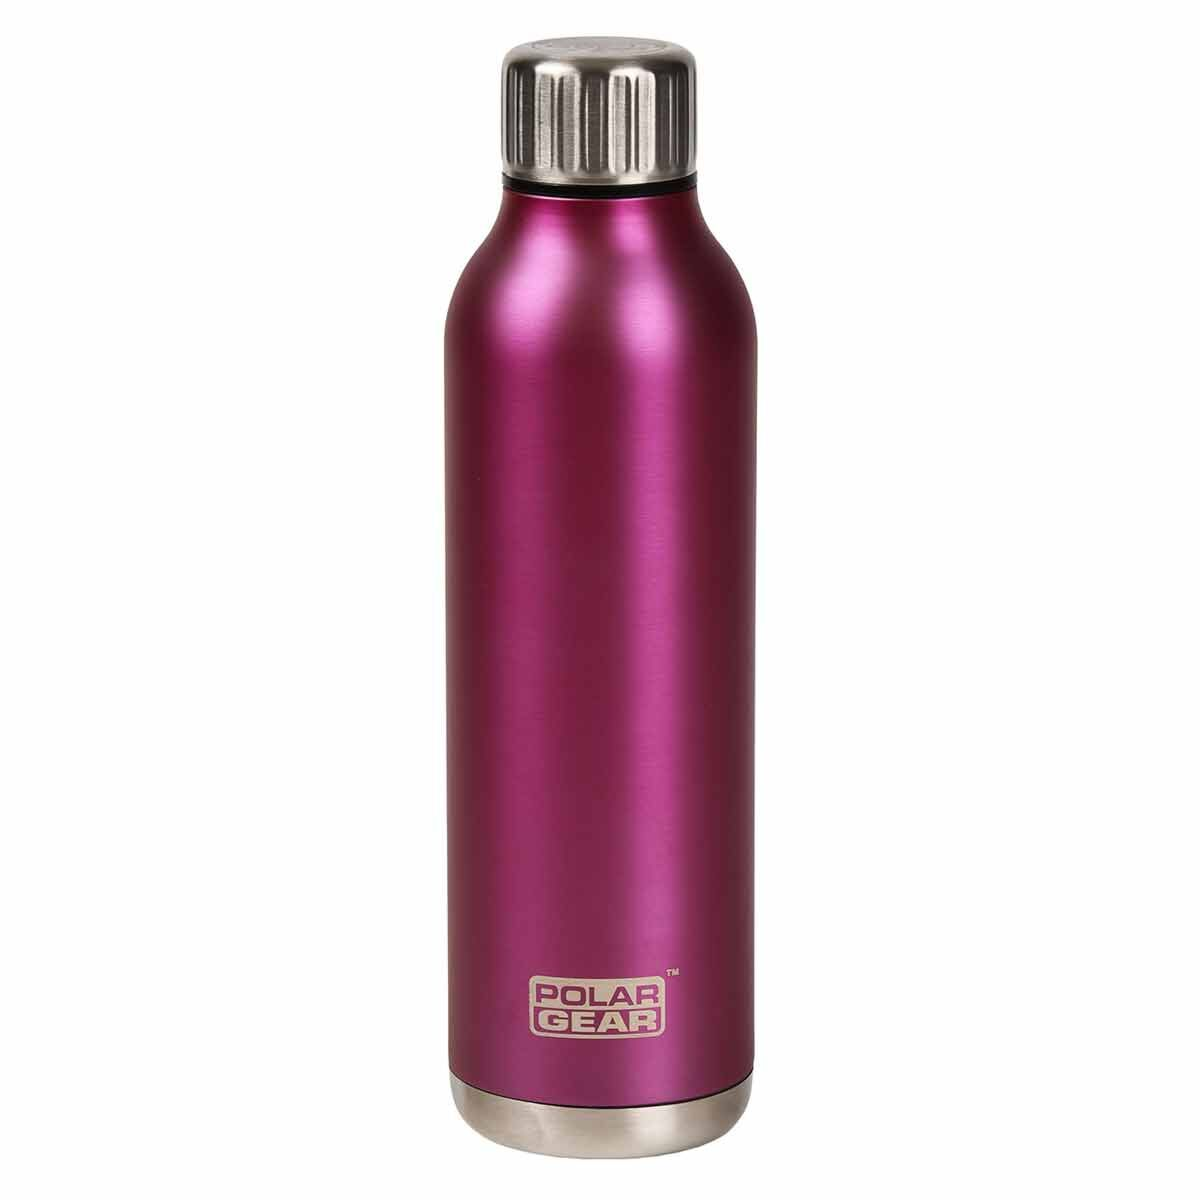 Polar Gear Orion Stainless Steel 500ml Insulated Bottle Berry